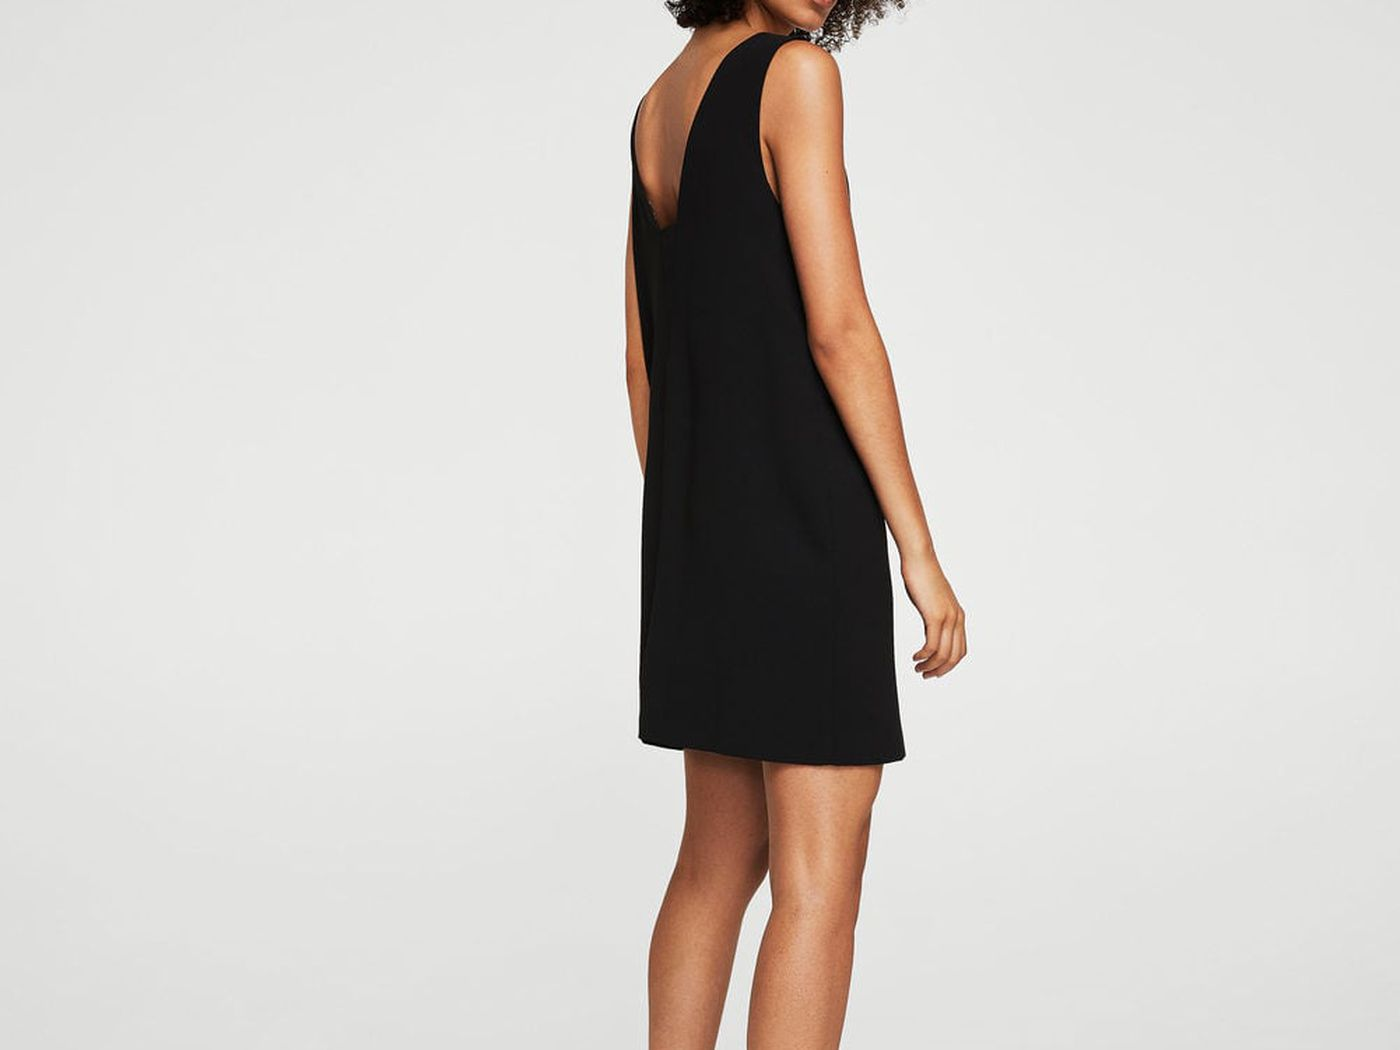 6d9a723d459 Where Can I Find an LBD for Holiday Parties That I Can Also Wear to Work